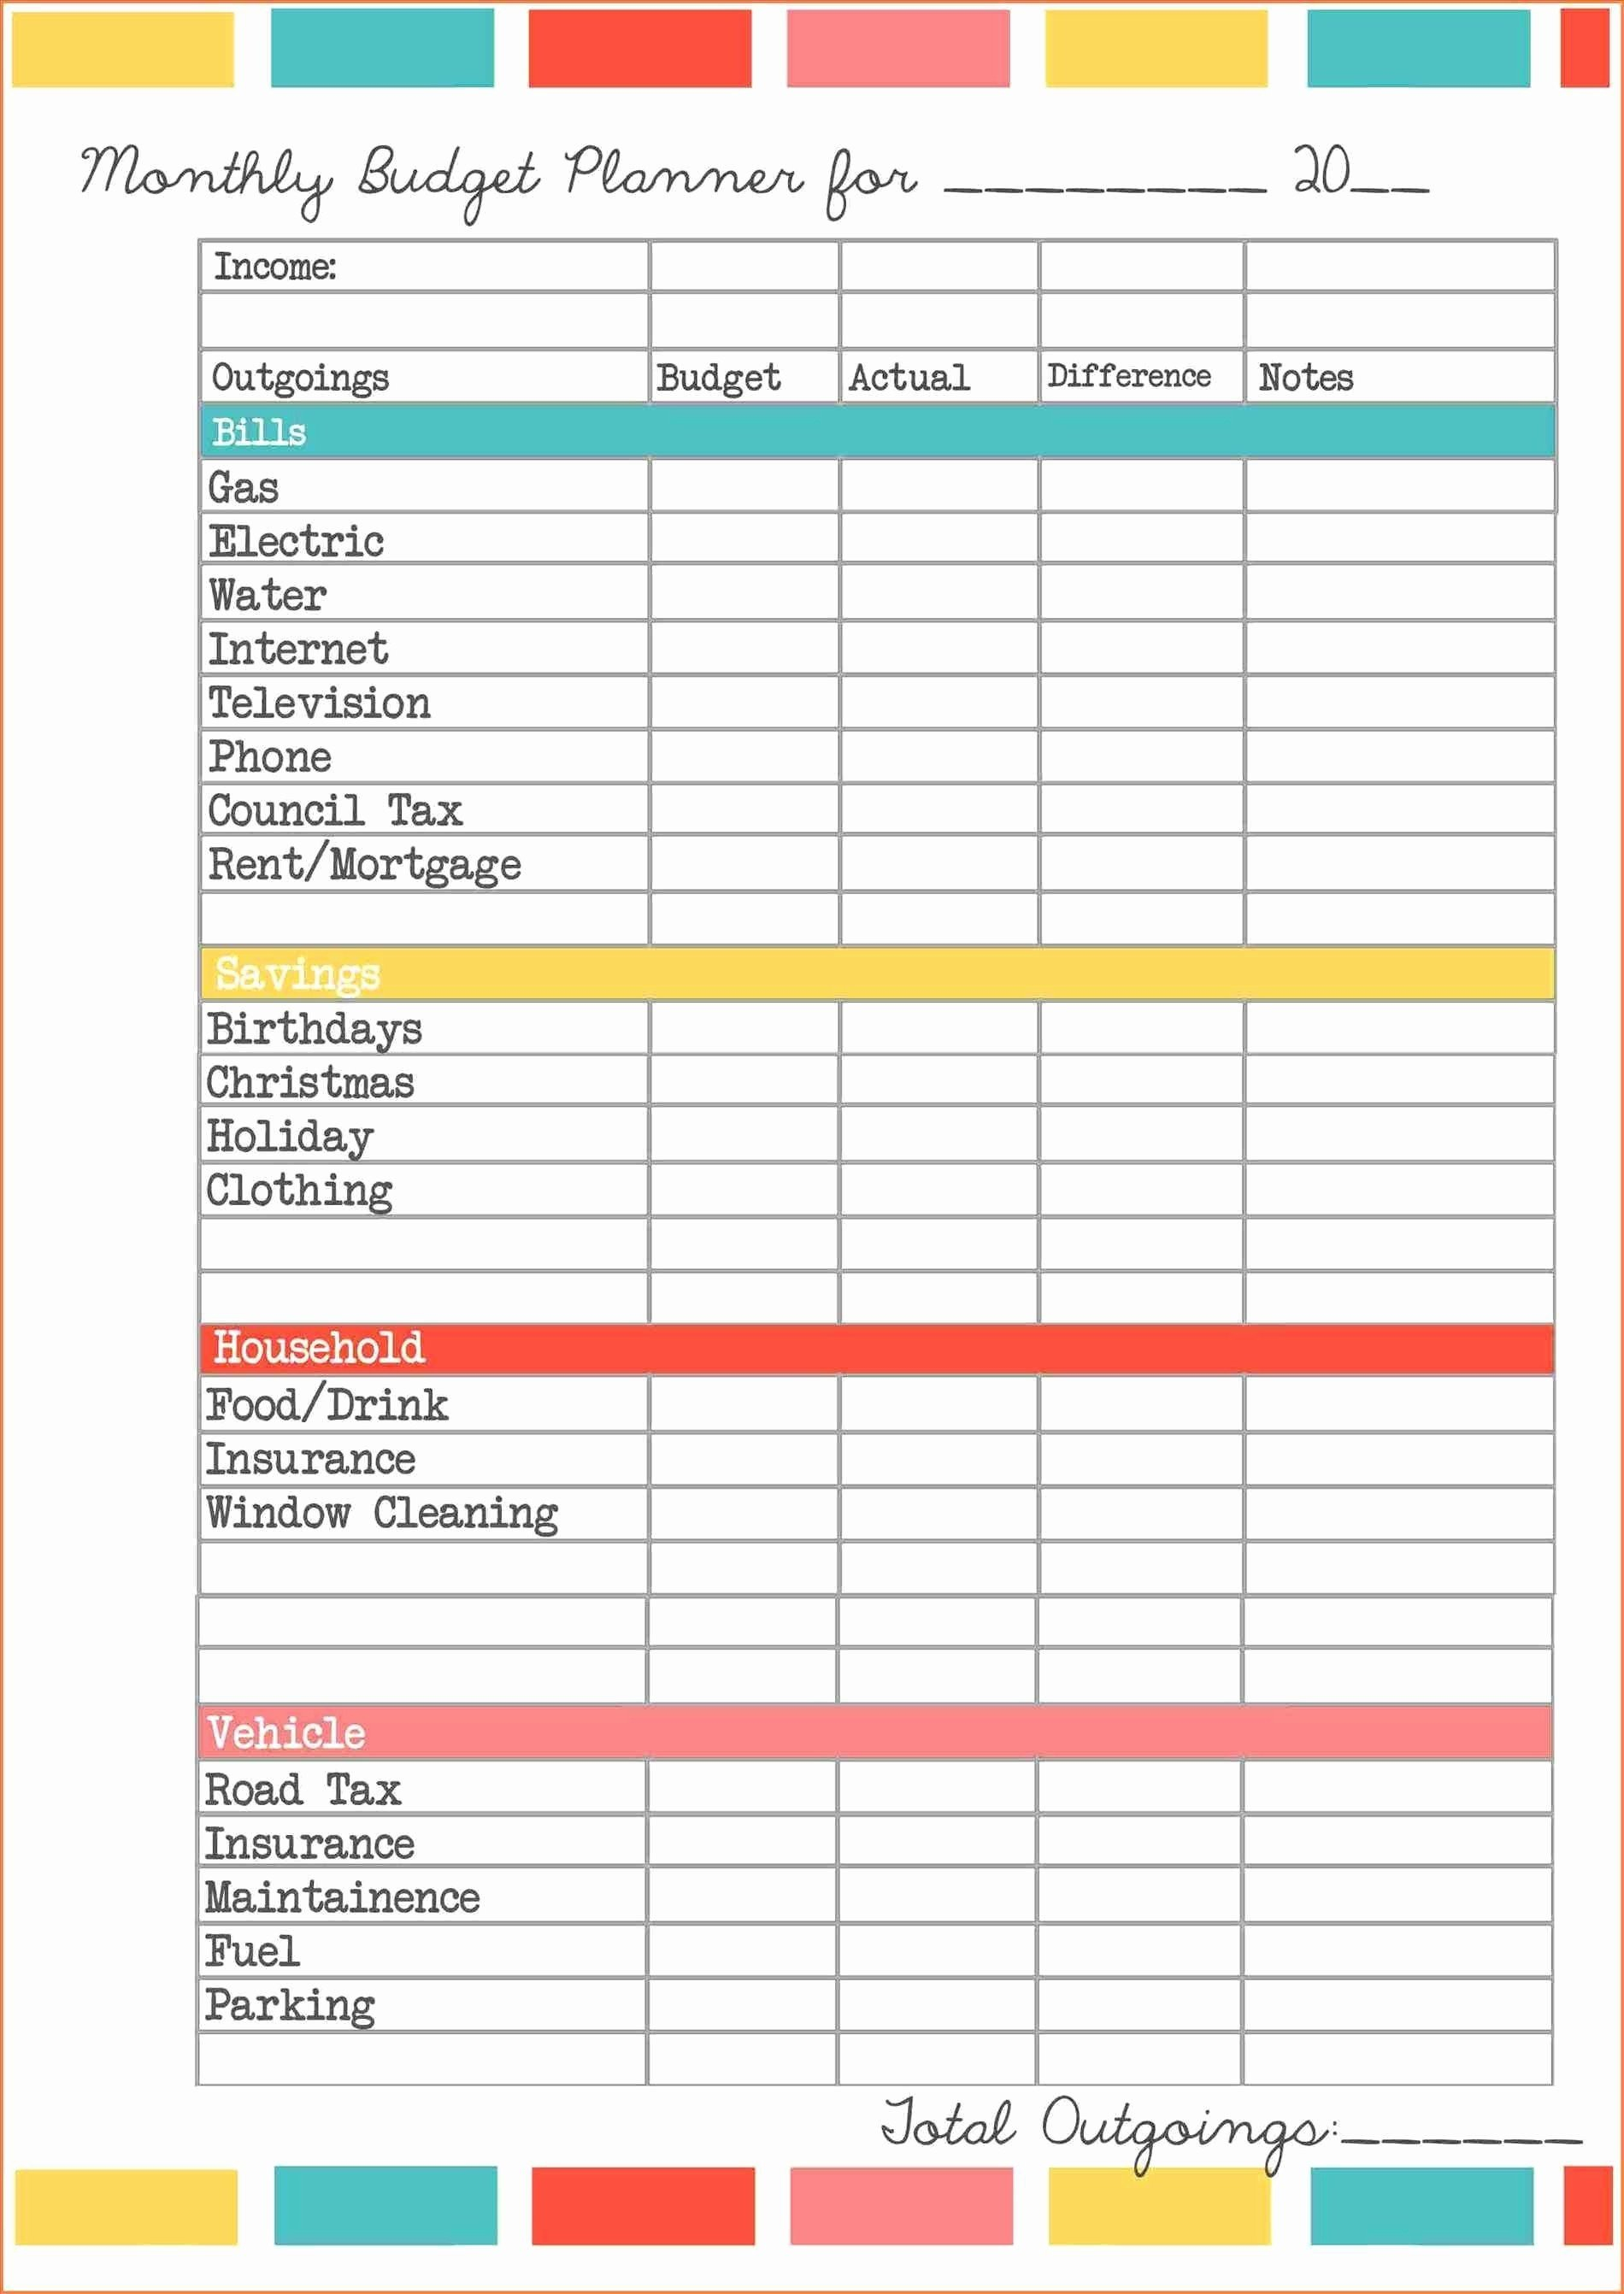 Income Tracker Spreadsheet Good Budget Spreadsheet Excel Spreadsheet In Business Income And Extra Expense Worksheet